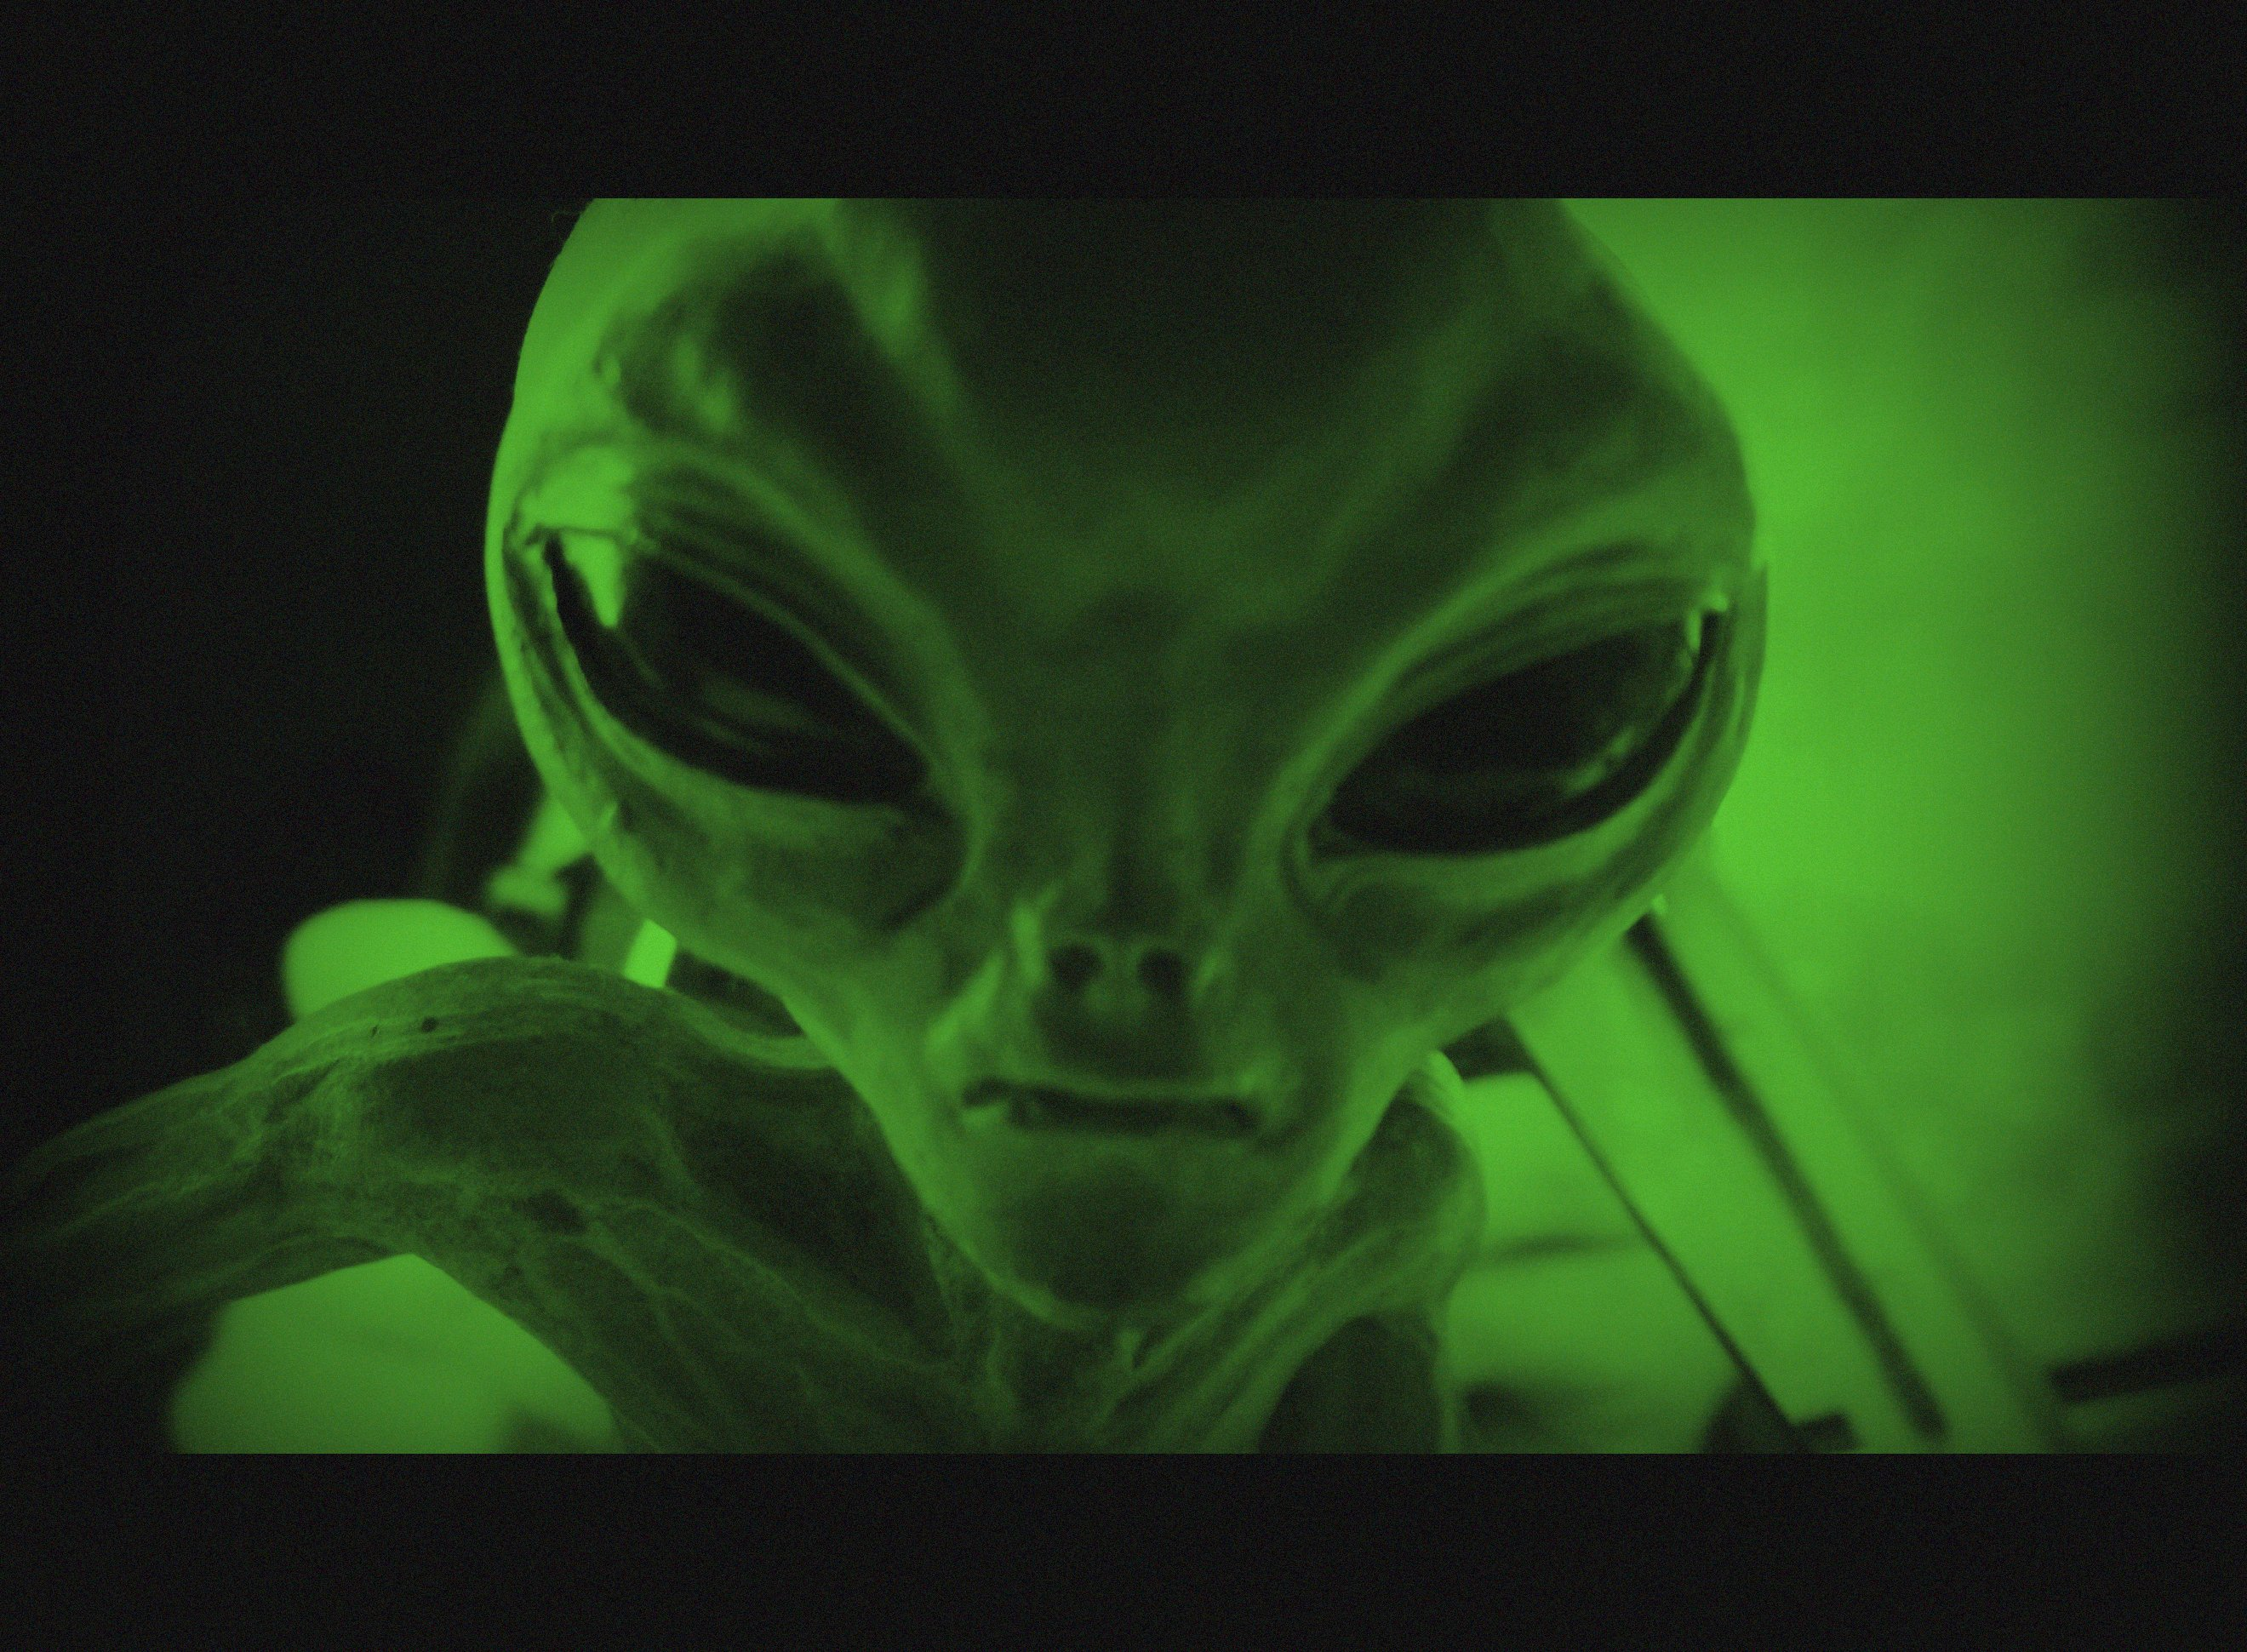 The Best Alien Documentaries on Netflix | Inverse